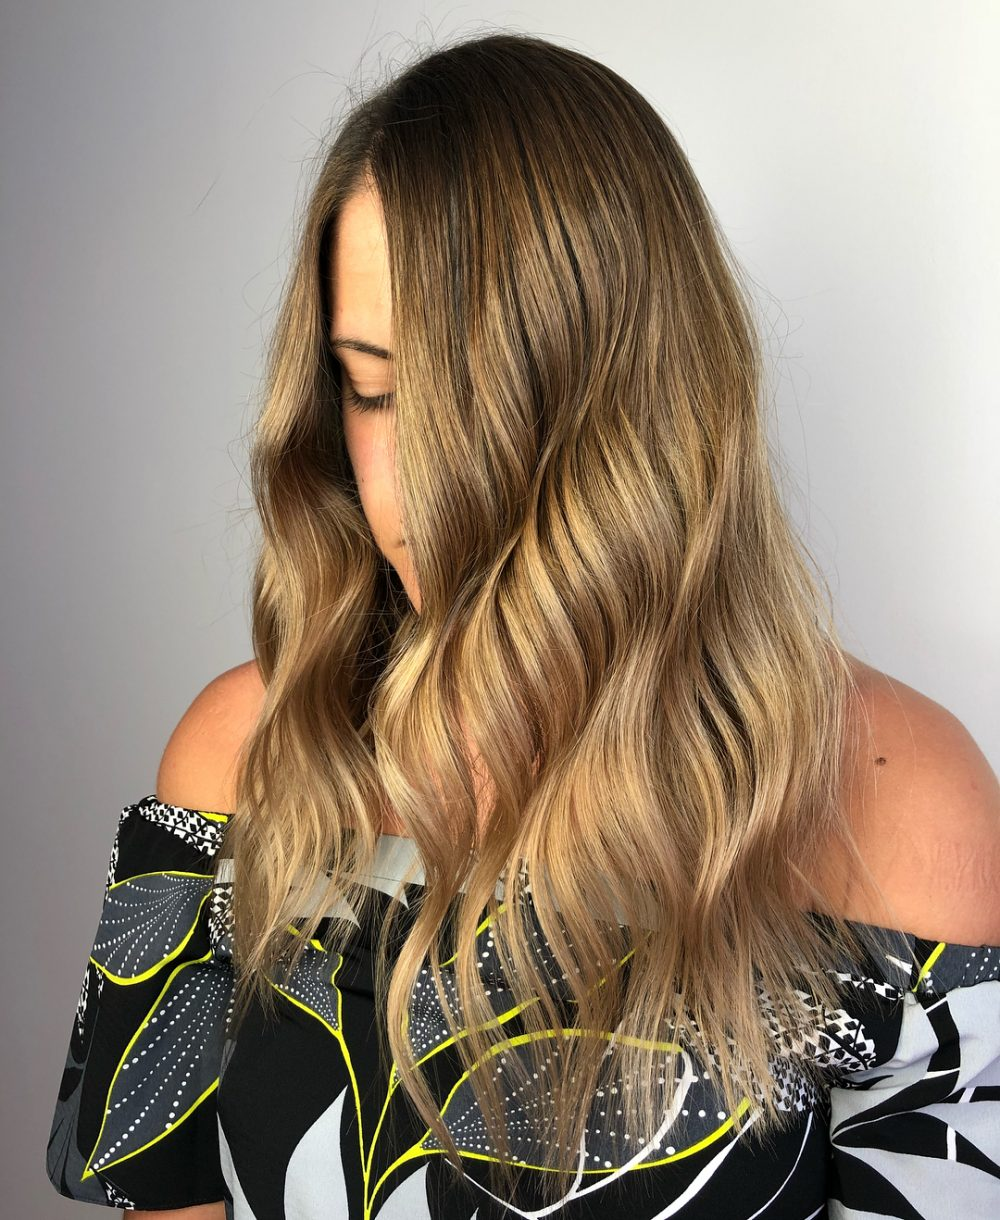 Lived-In Effortless Glam hairstyle